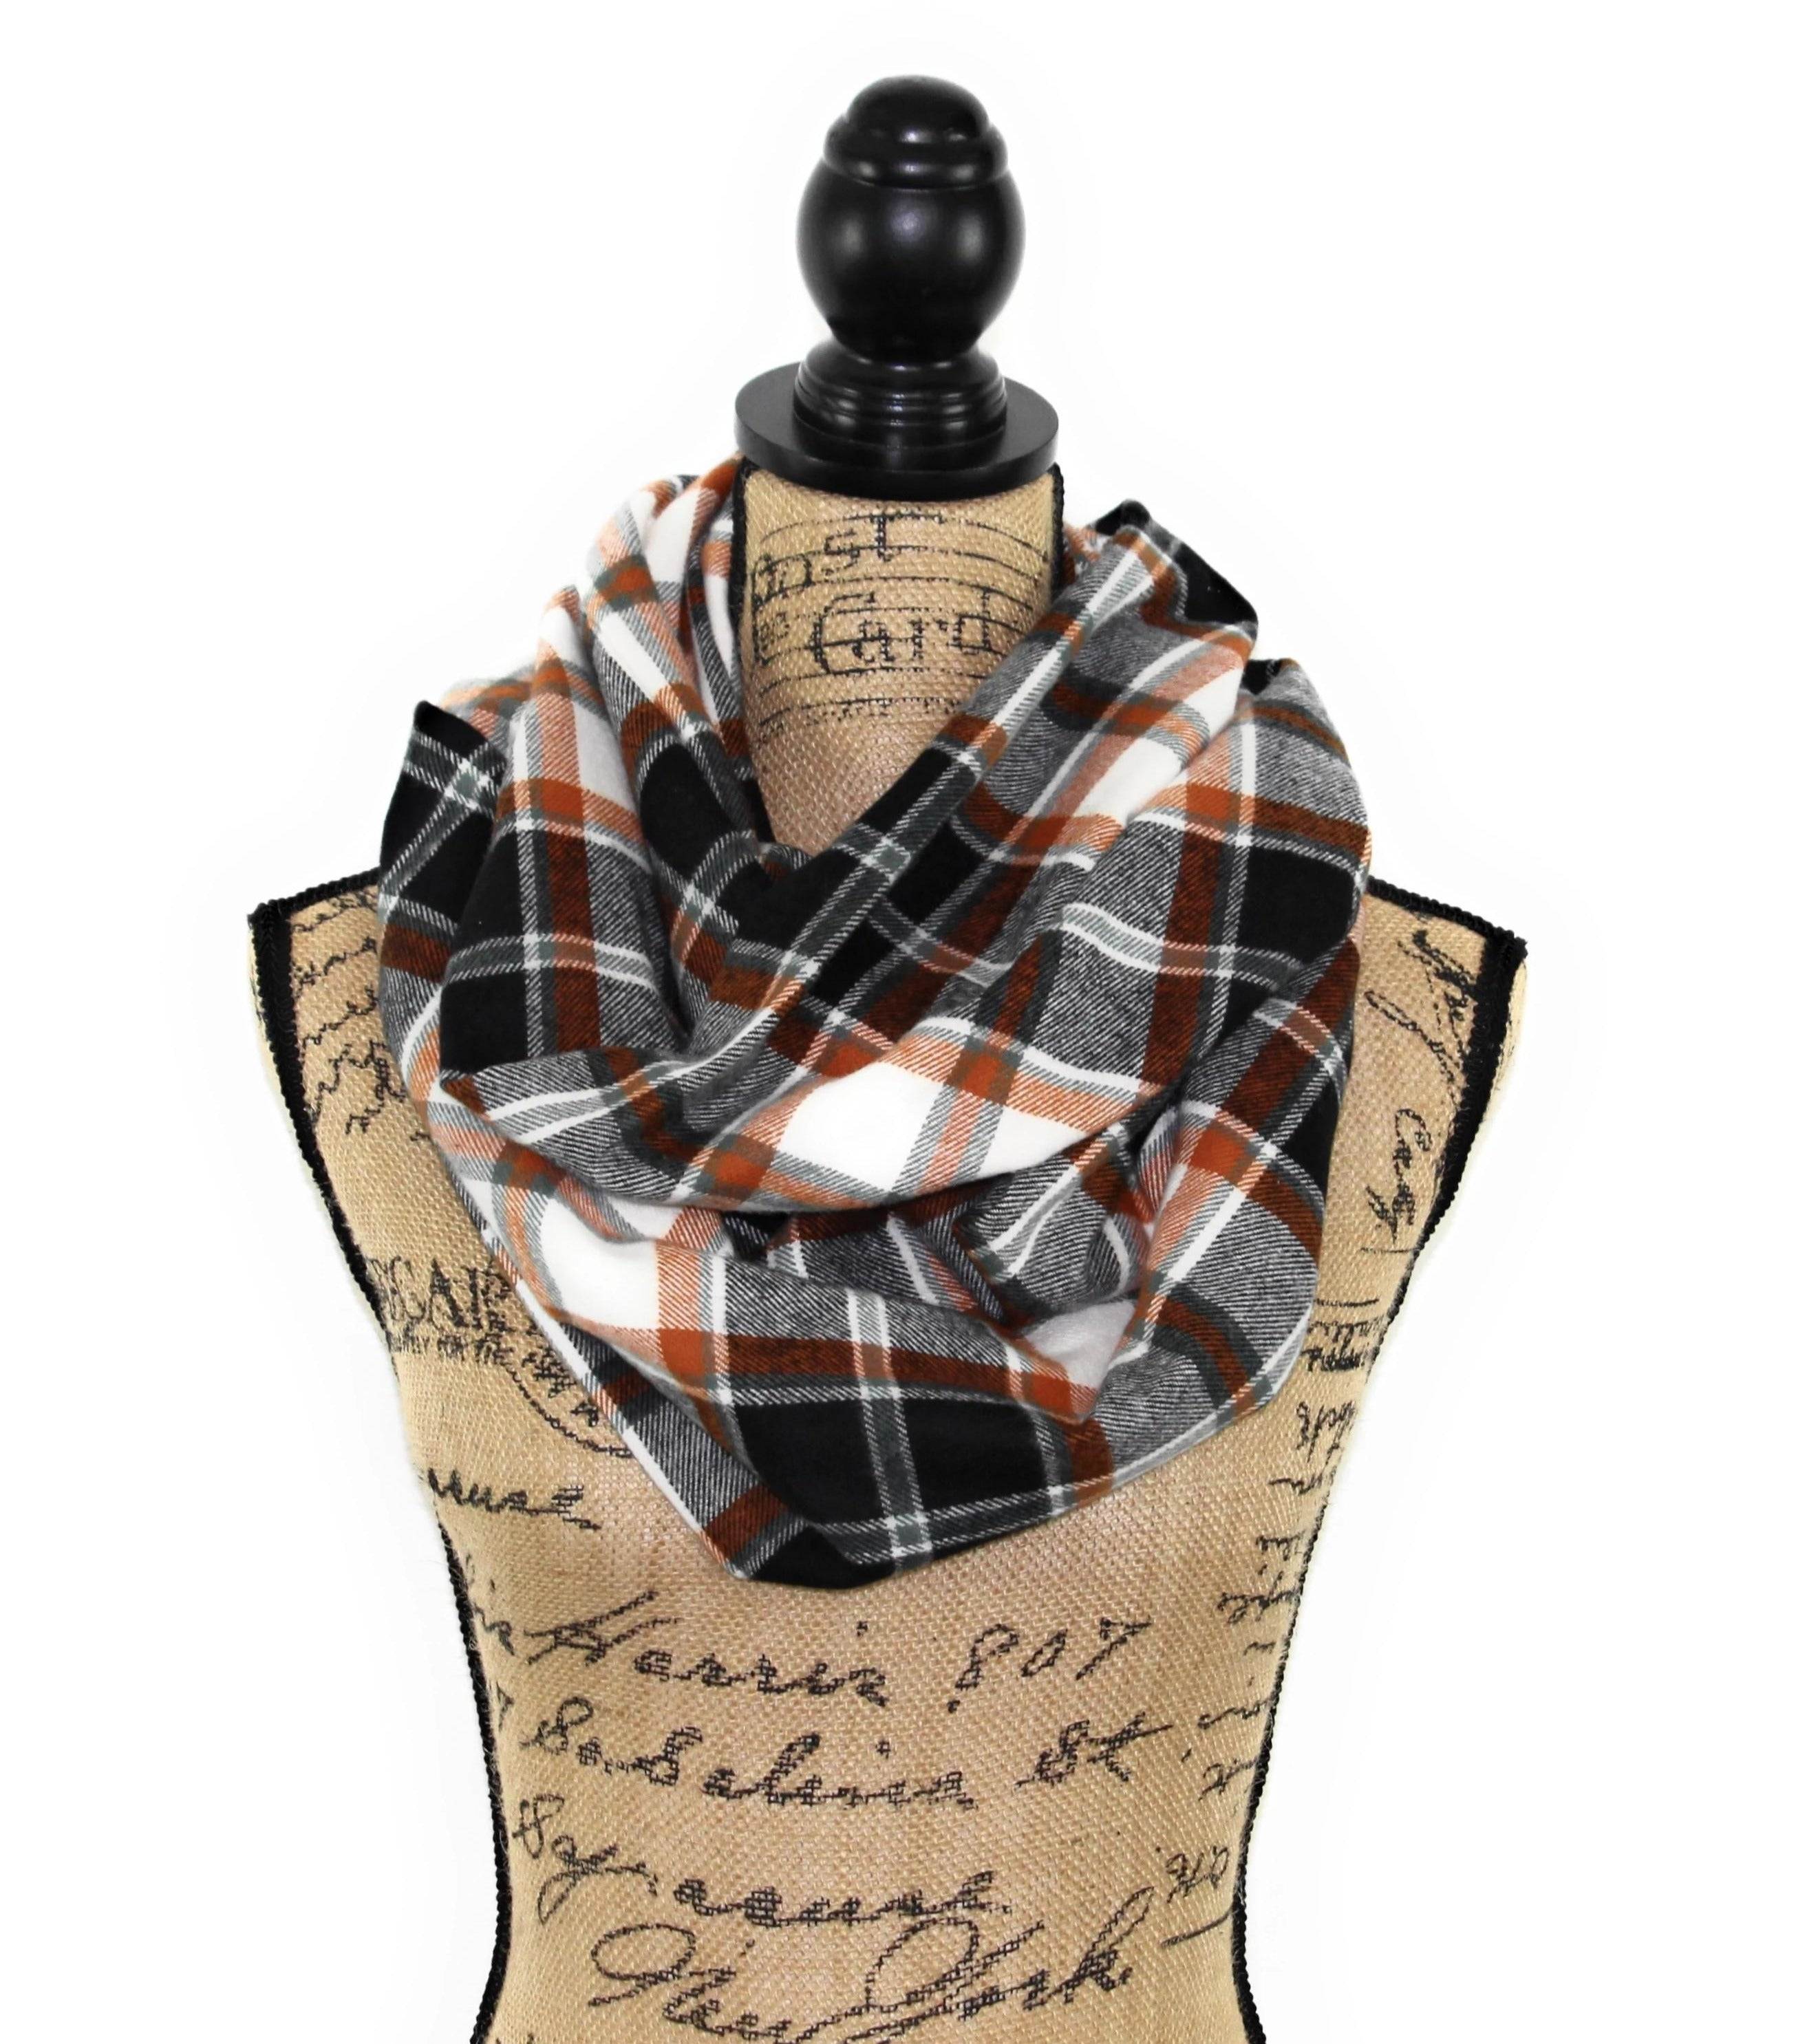 Black, White, Teal-Gray, and Orange Medium Weight Flannel Plaid Infinity or Blank Scarf